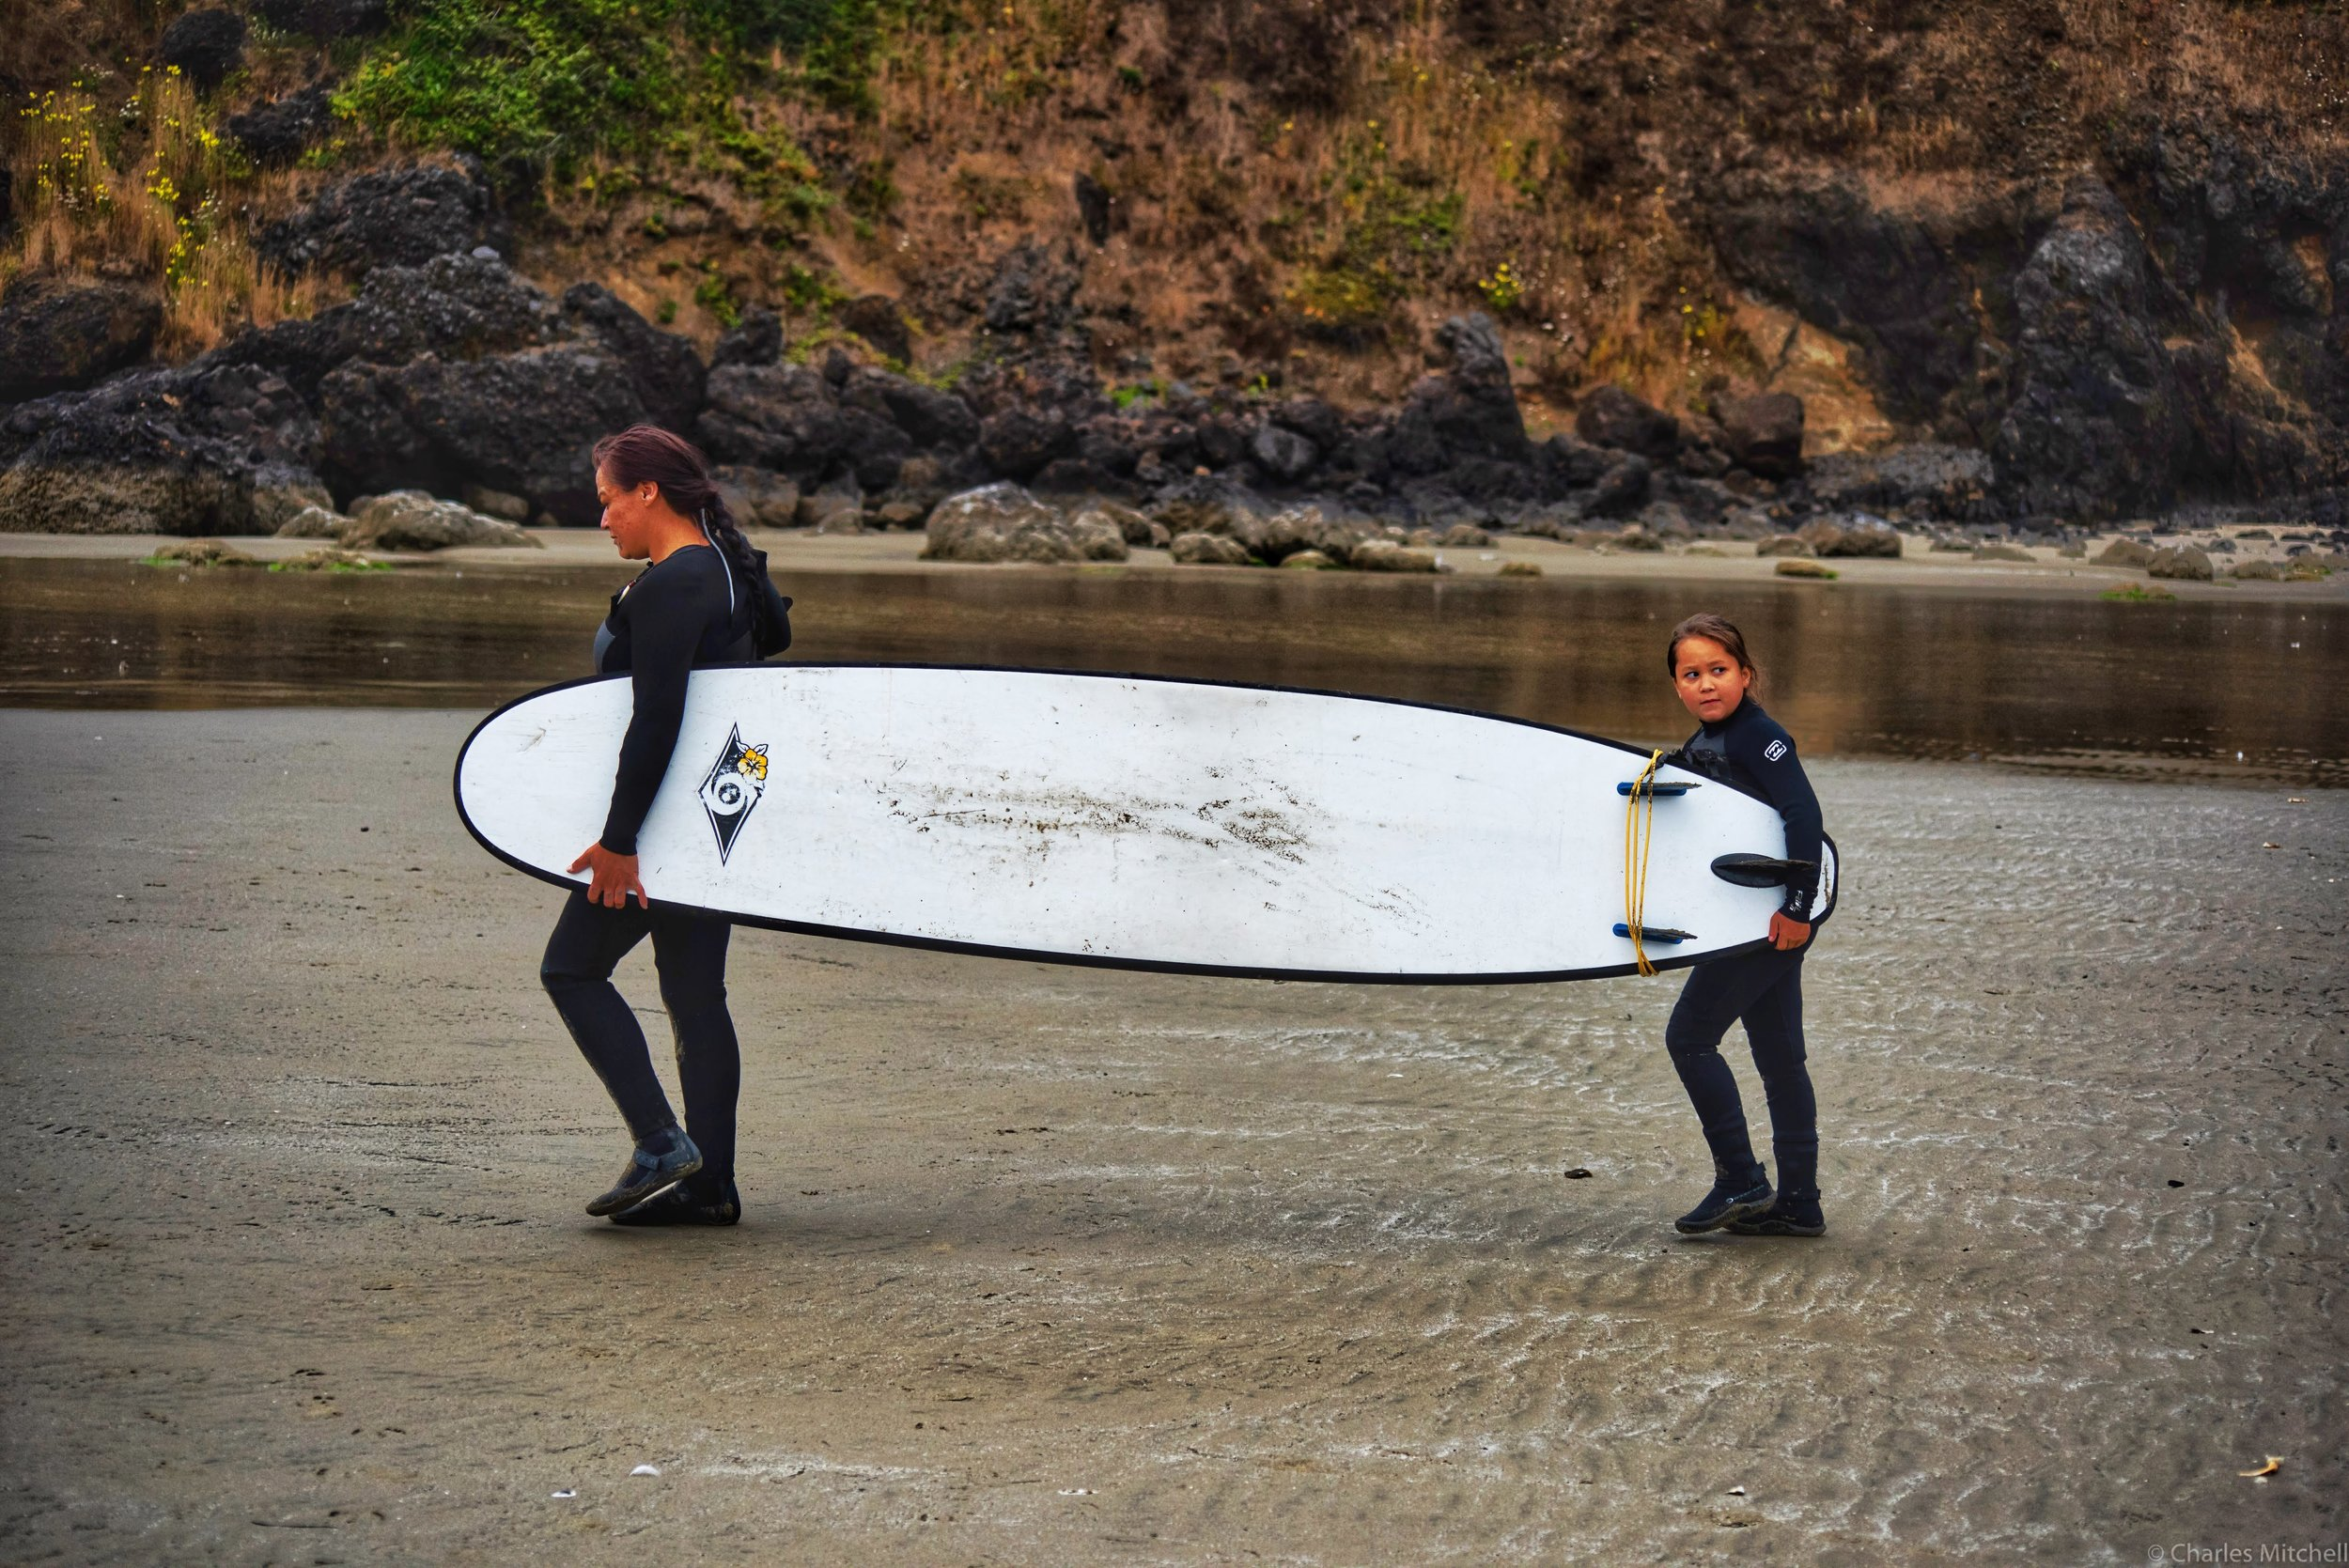 Mom & Daughter surfboard carry